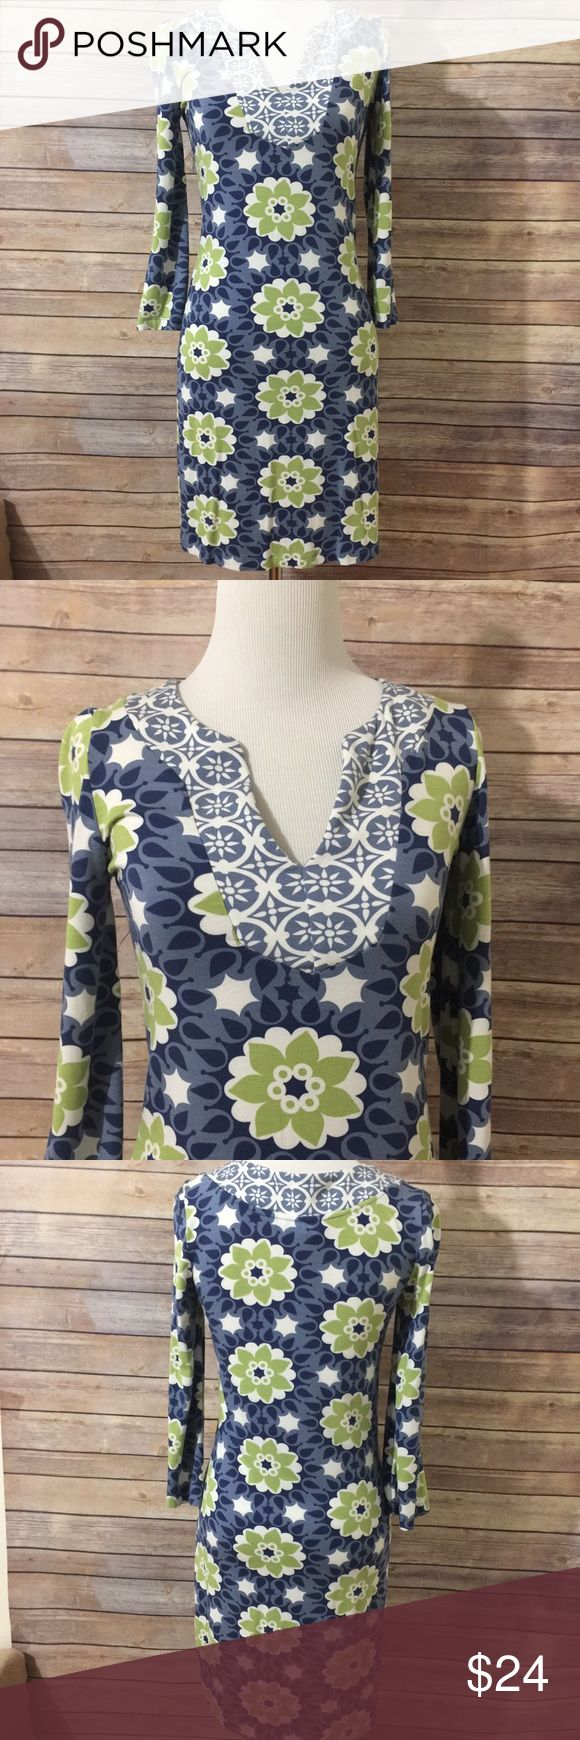 "Boden 3/4 sleeve Print Dress sz 2 Super cute in shades of blue, green and white. 3/4 sleeves sz 2. Laying flat the bust measures 15"" from underarm to underarm. Overall length is 35"". Great preowned condition. D55 Loc Boden Dresses"